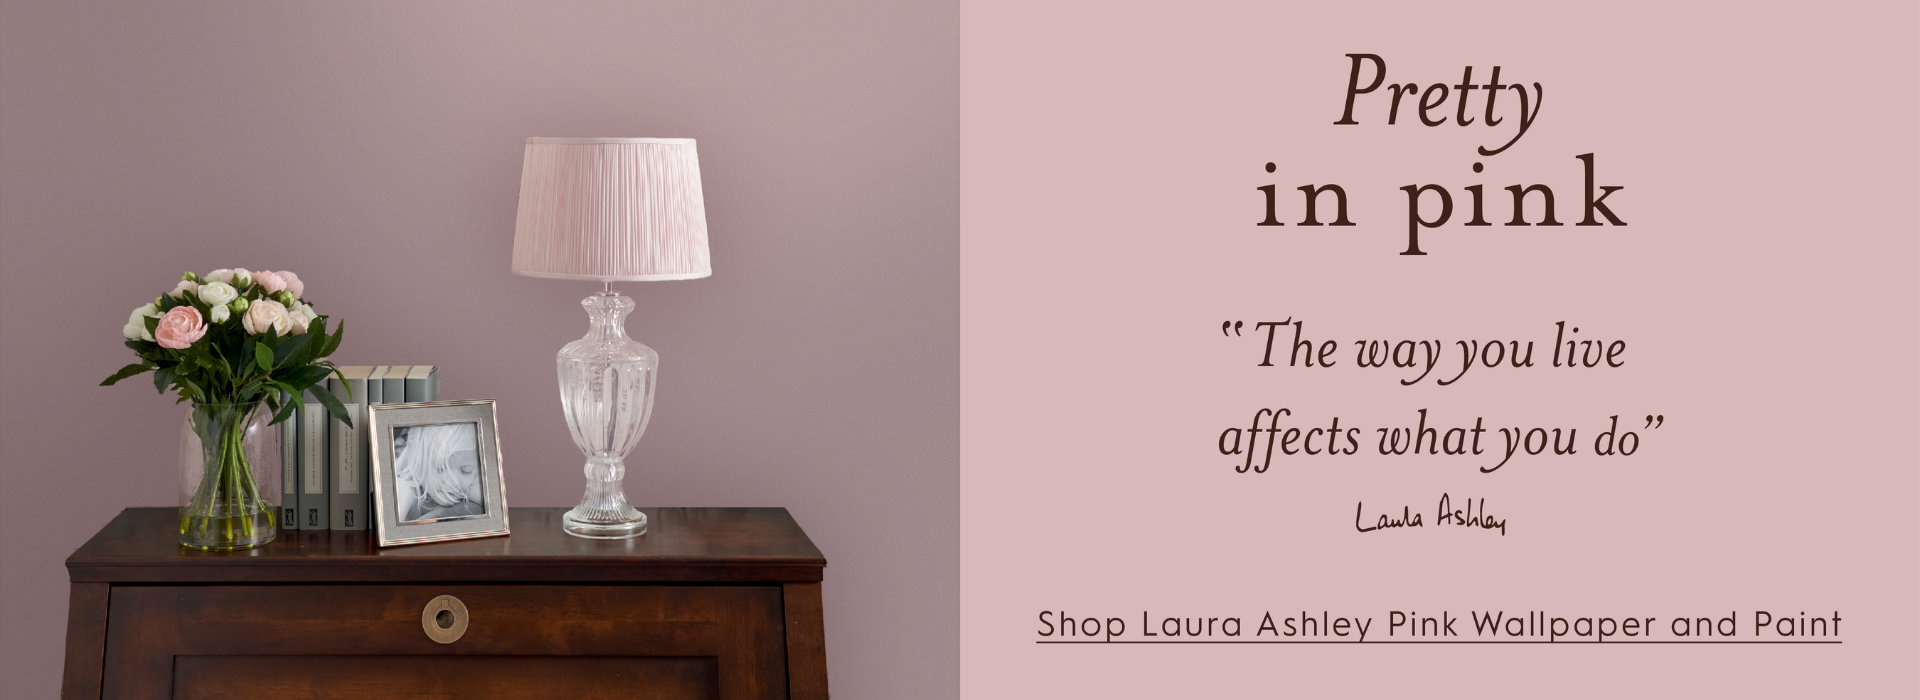 Pretty in pink ''The way you live affects what you do'' - Laura Ashley. Shop Laura Ashley Pink Wallpaper and Paint